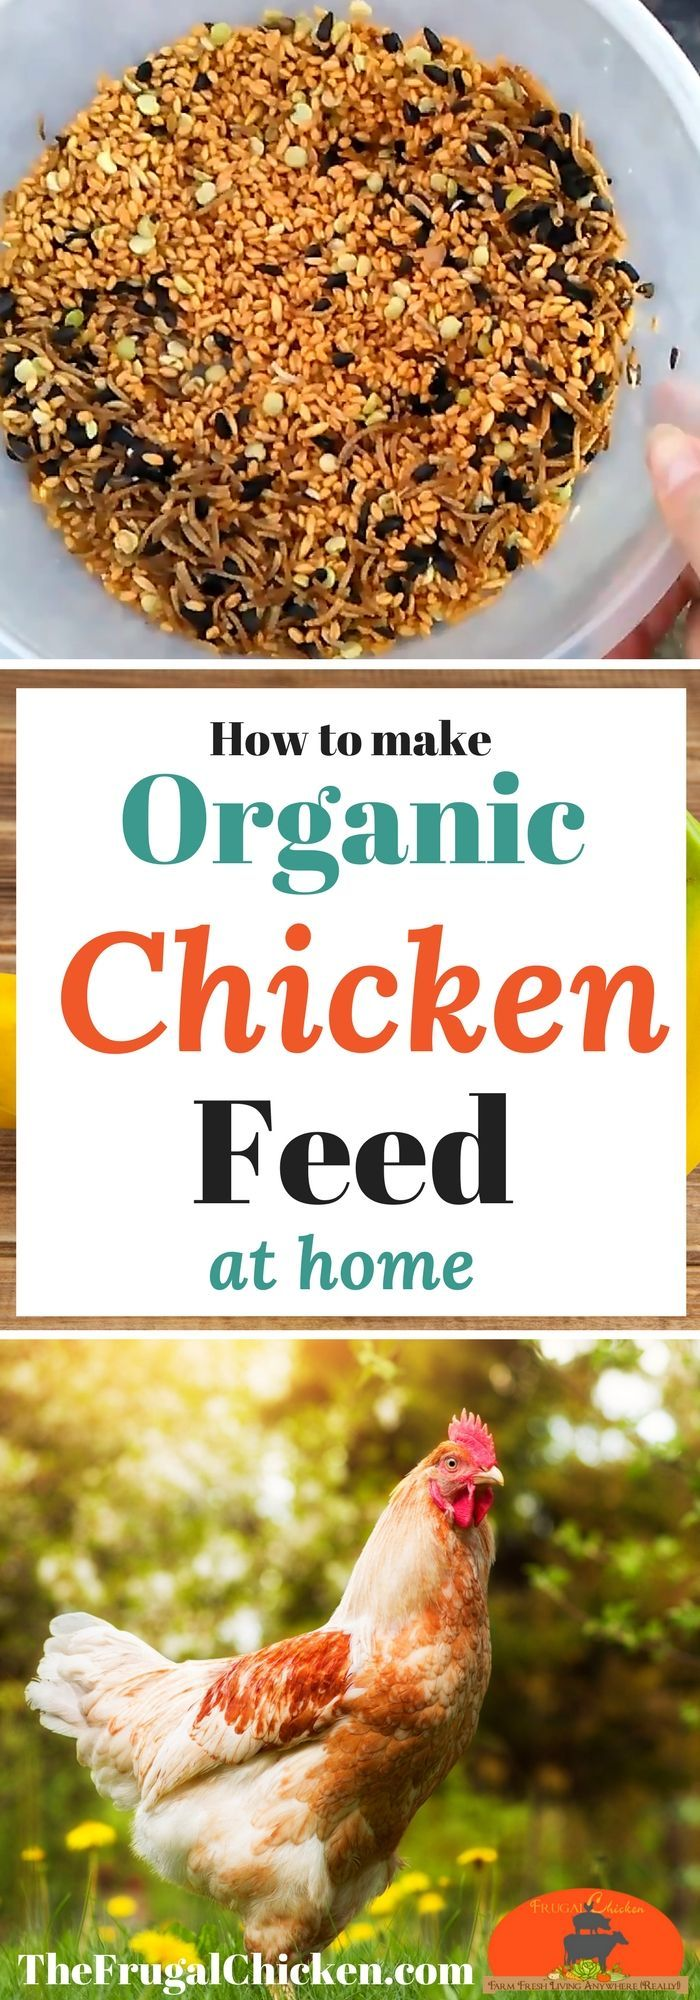 """Want to feed your backyard chickens organic homemade feed? Here's our """"tried-and-true"""" recipe thousands of chicken owners depend on!"""